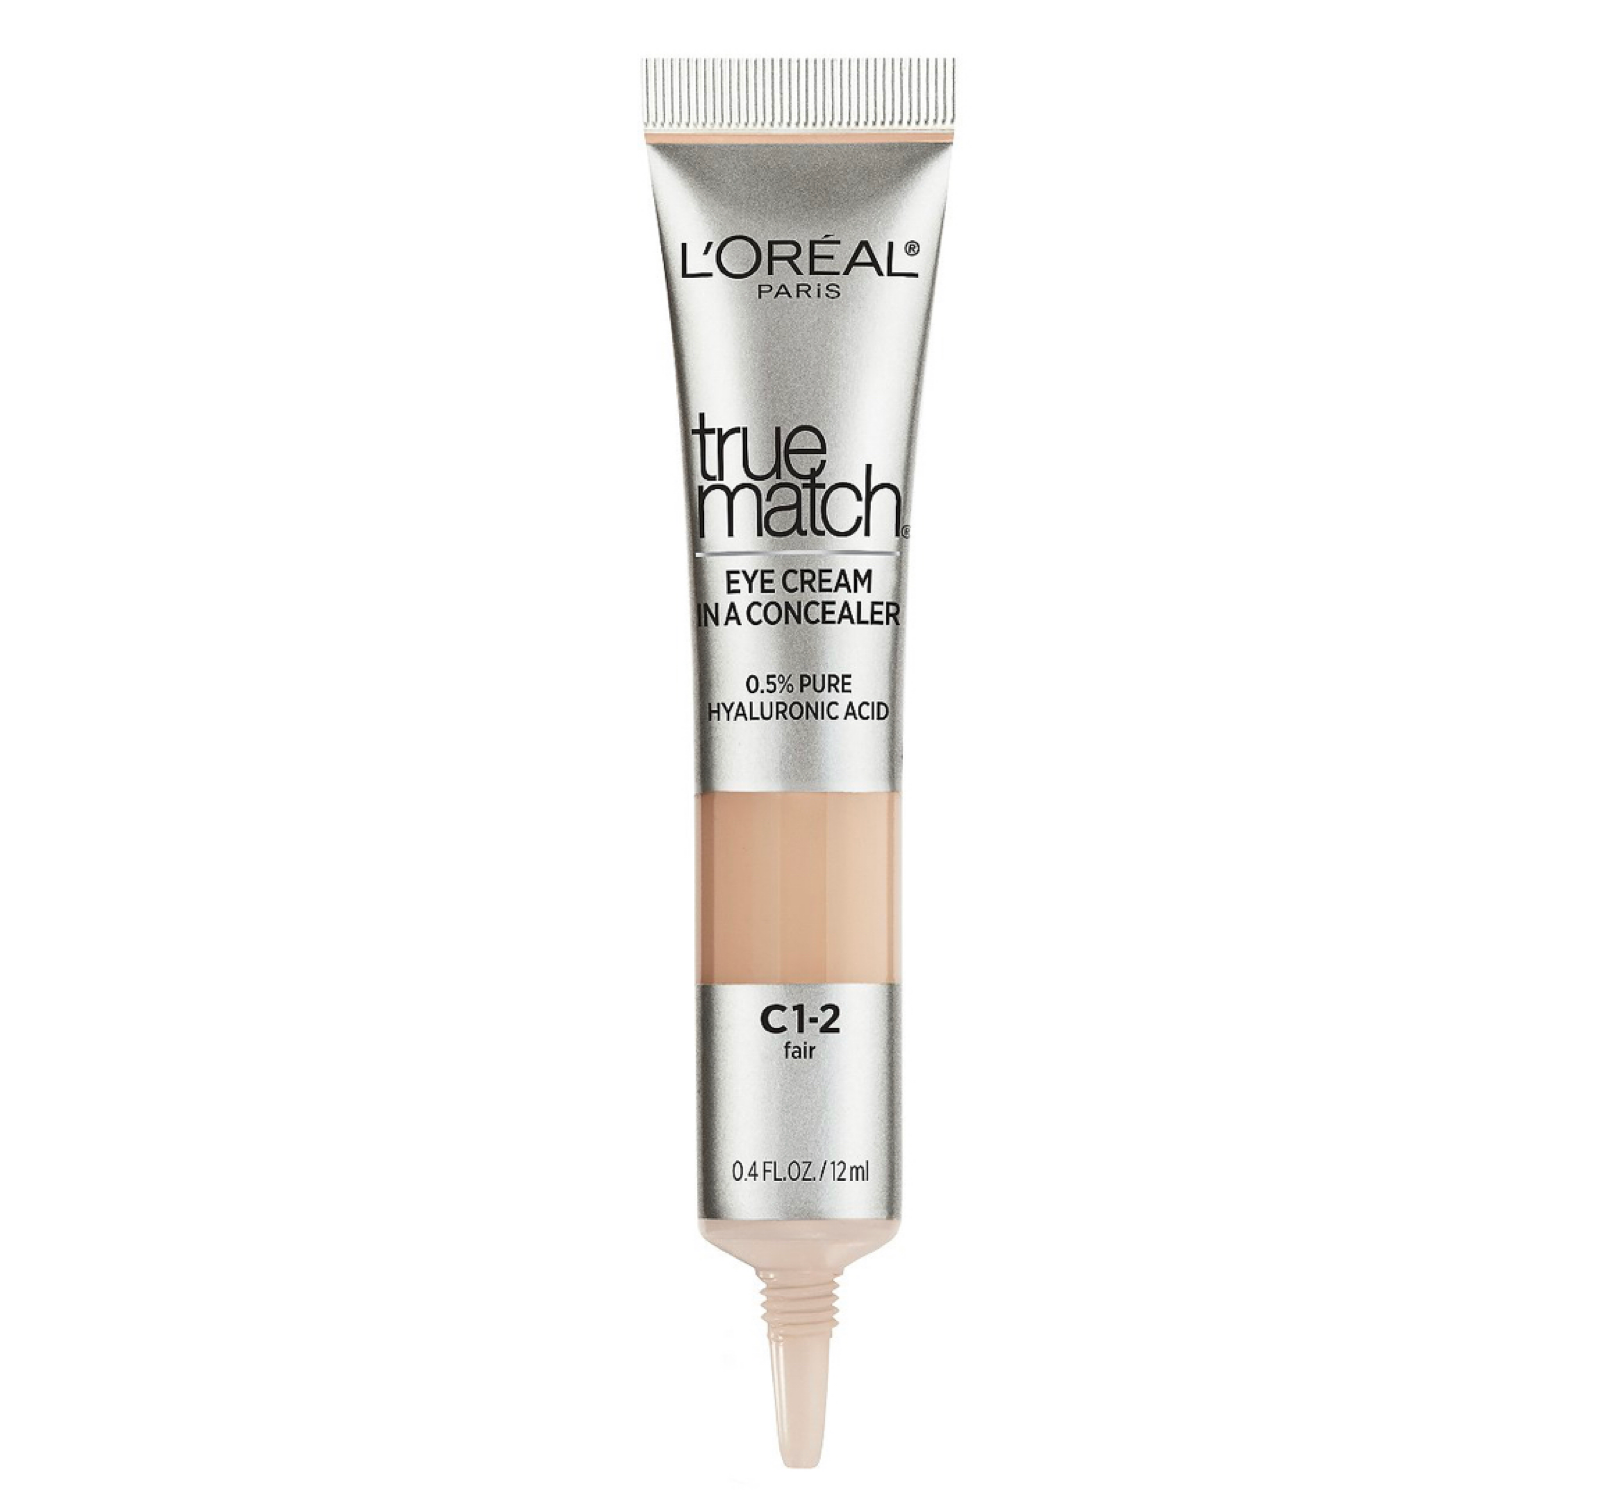 L'Oreal True Match Eye Cream In A Concealer